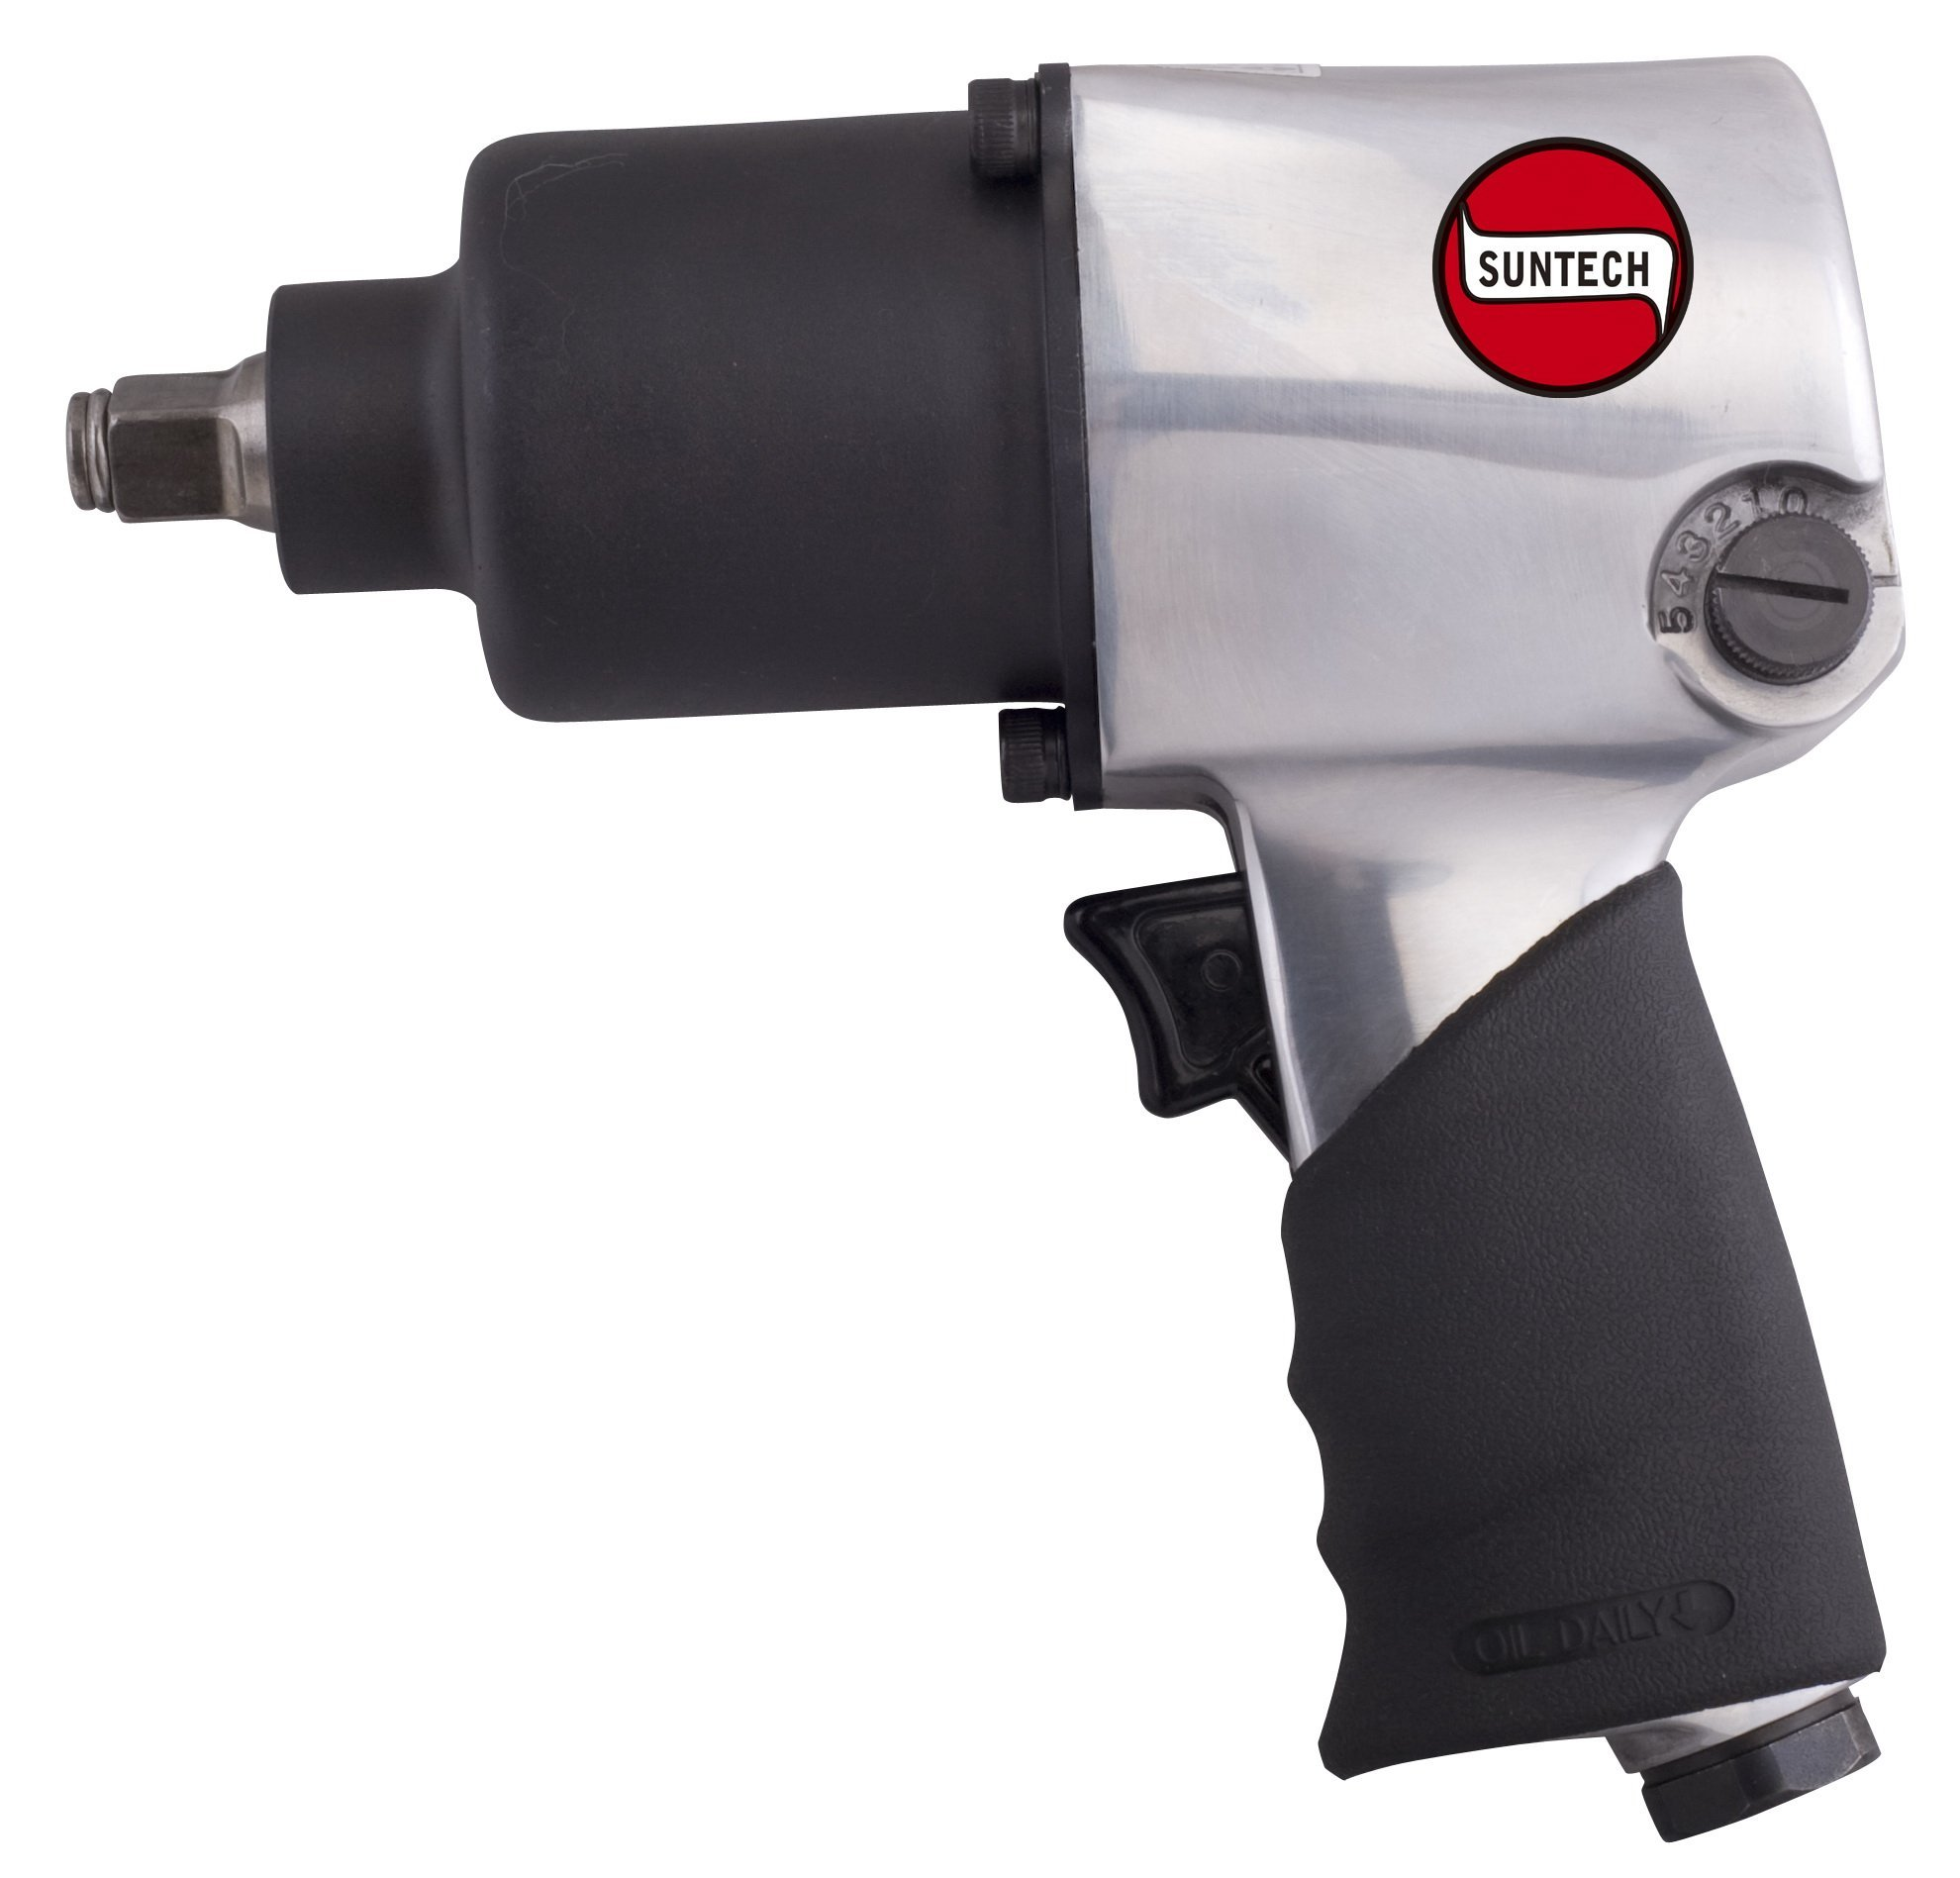 SUNTECH SM-43-231FRG Air Impact Wrench with Front Exhaust & Handle Grip, Silver, 1/2''